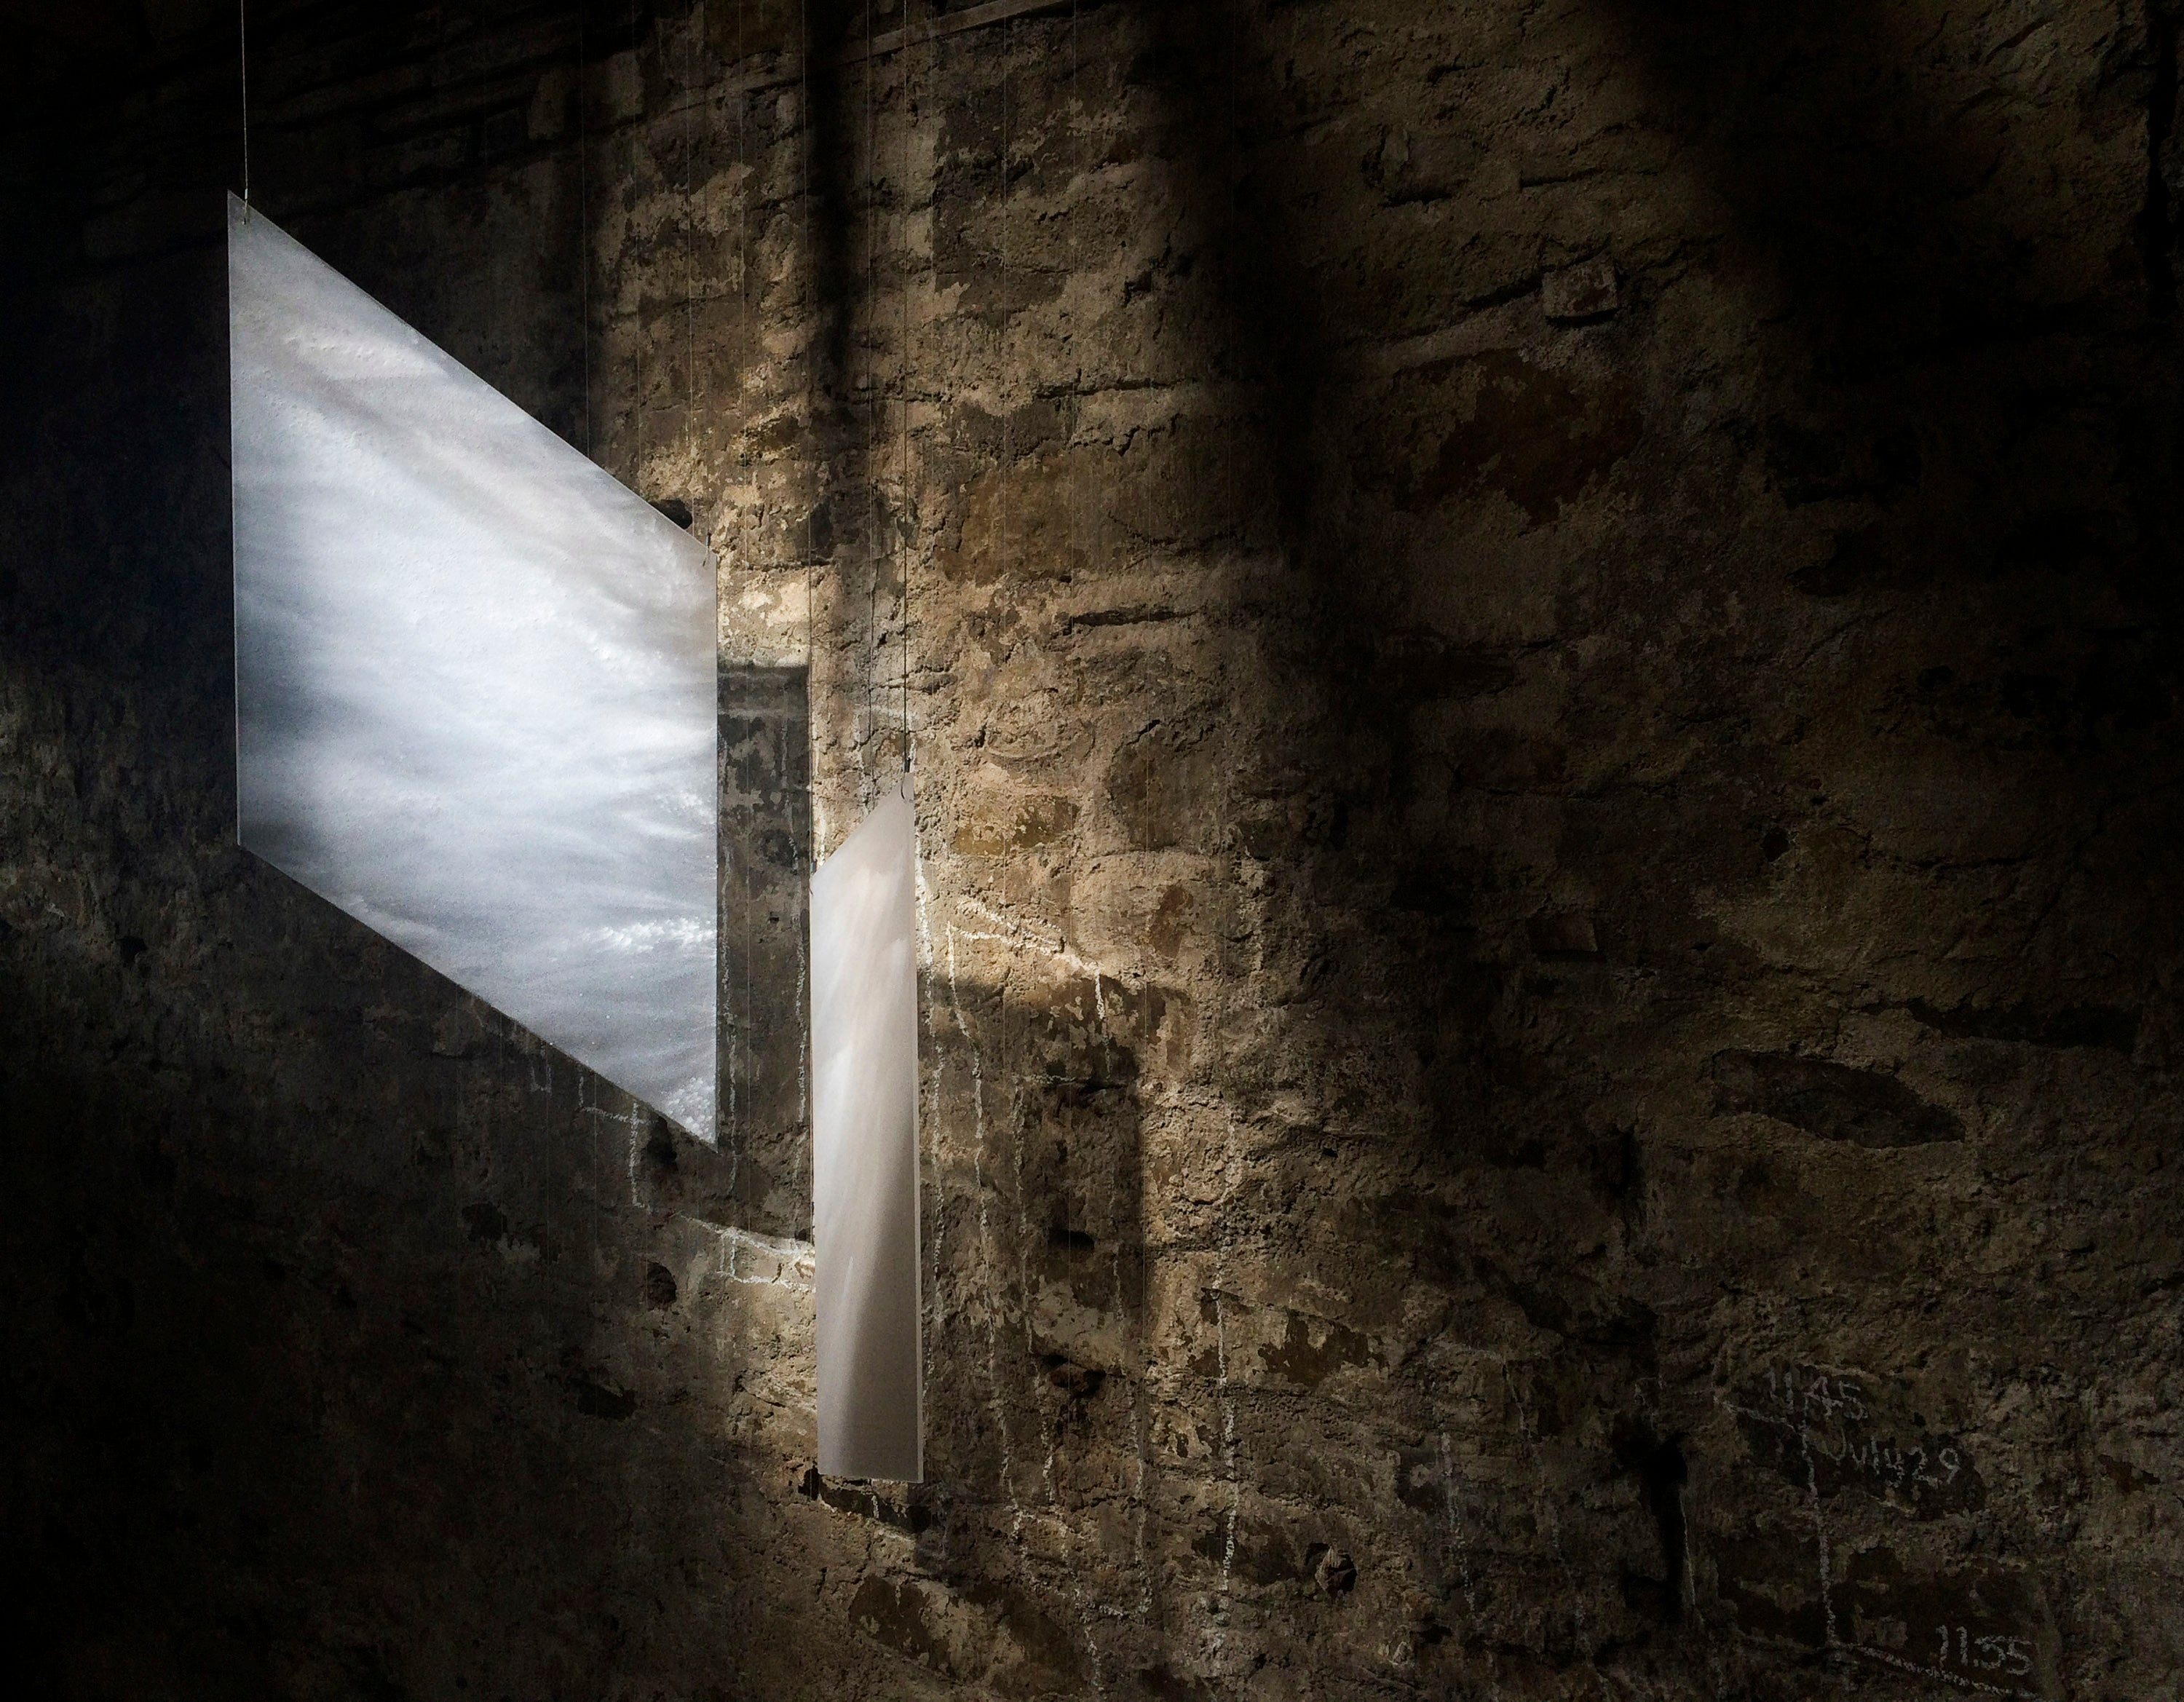 Installation in glass by Karlyn Sutherland. Glass panels made to echo shapes of light falling within the building. These exact shapes only occur once a year.